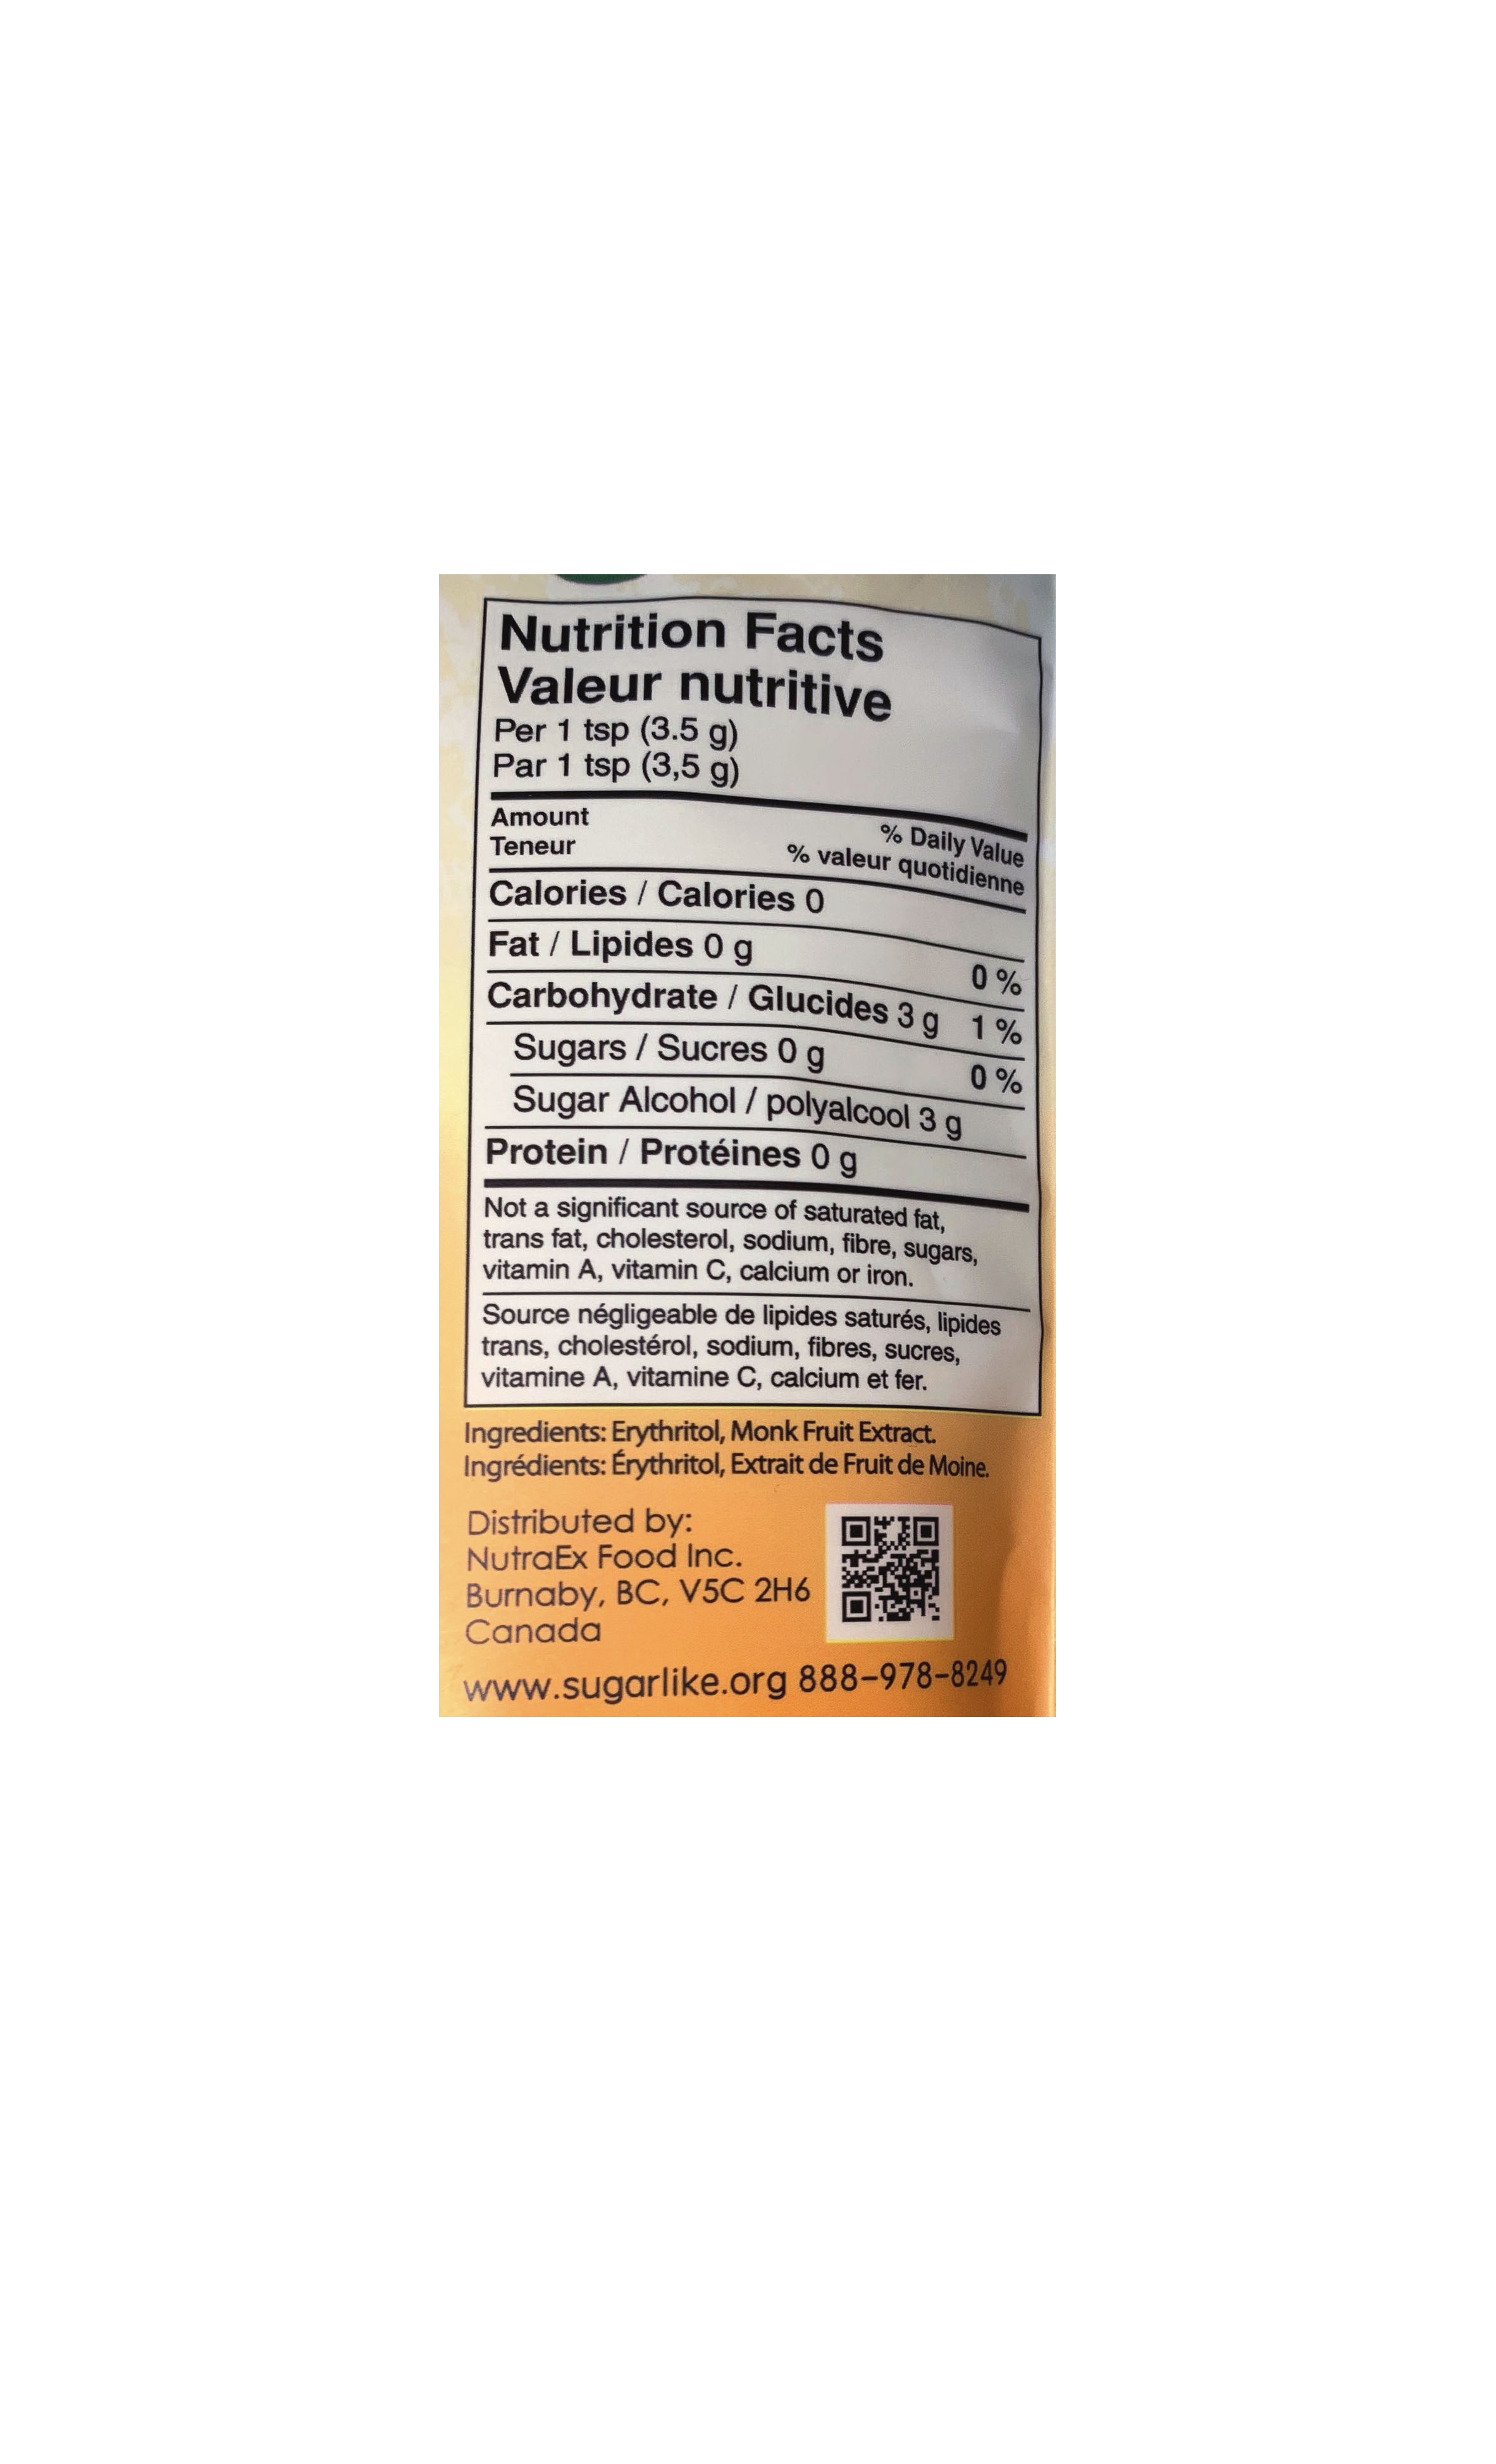 SugarLike nutrition facts table